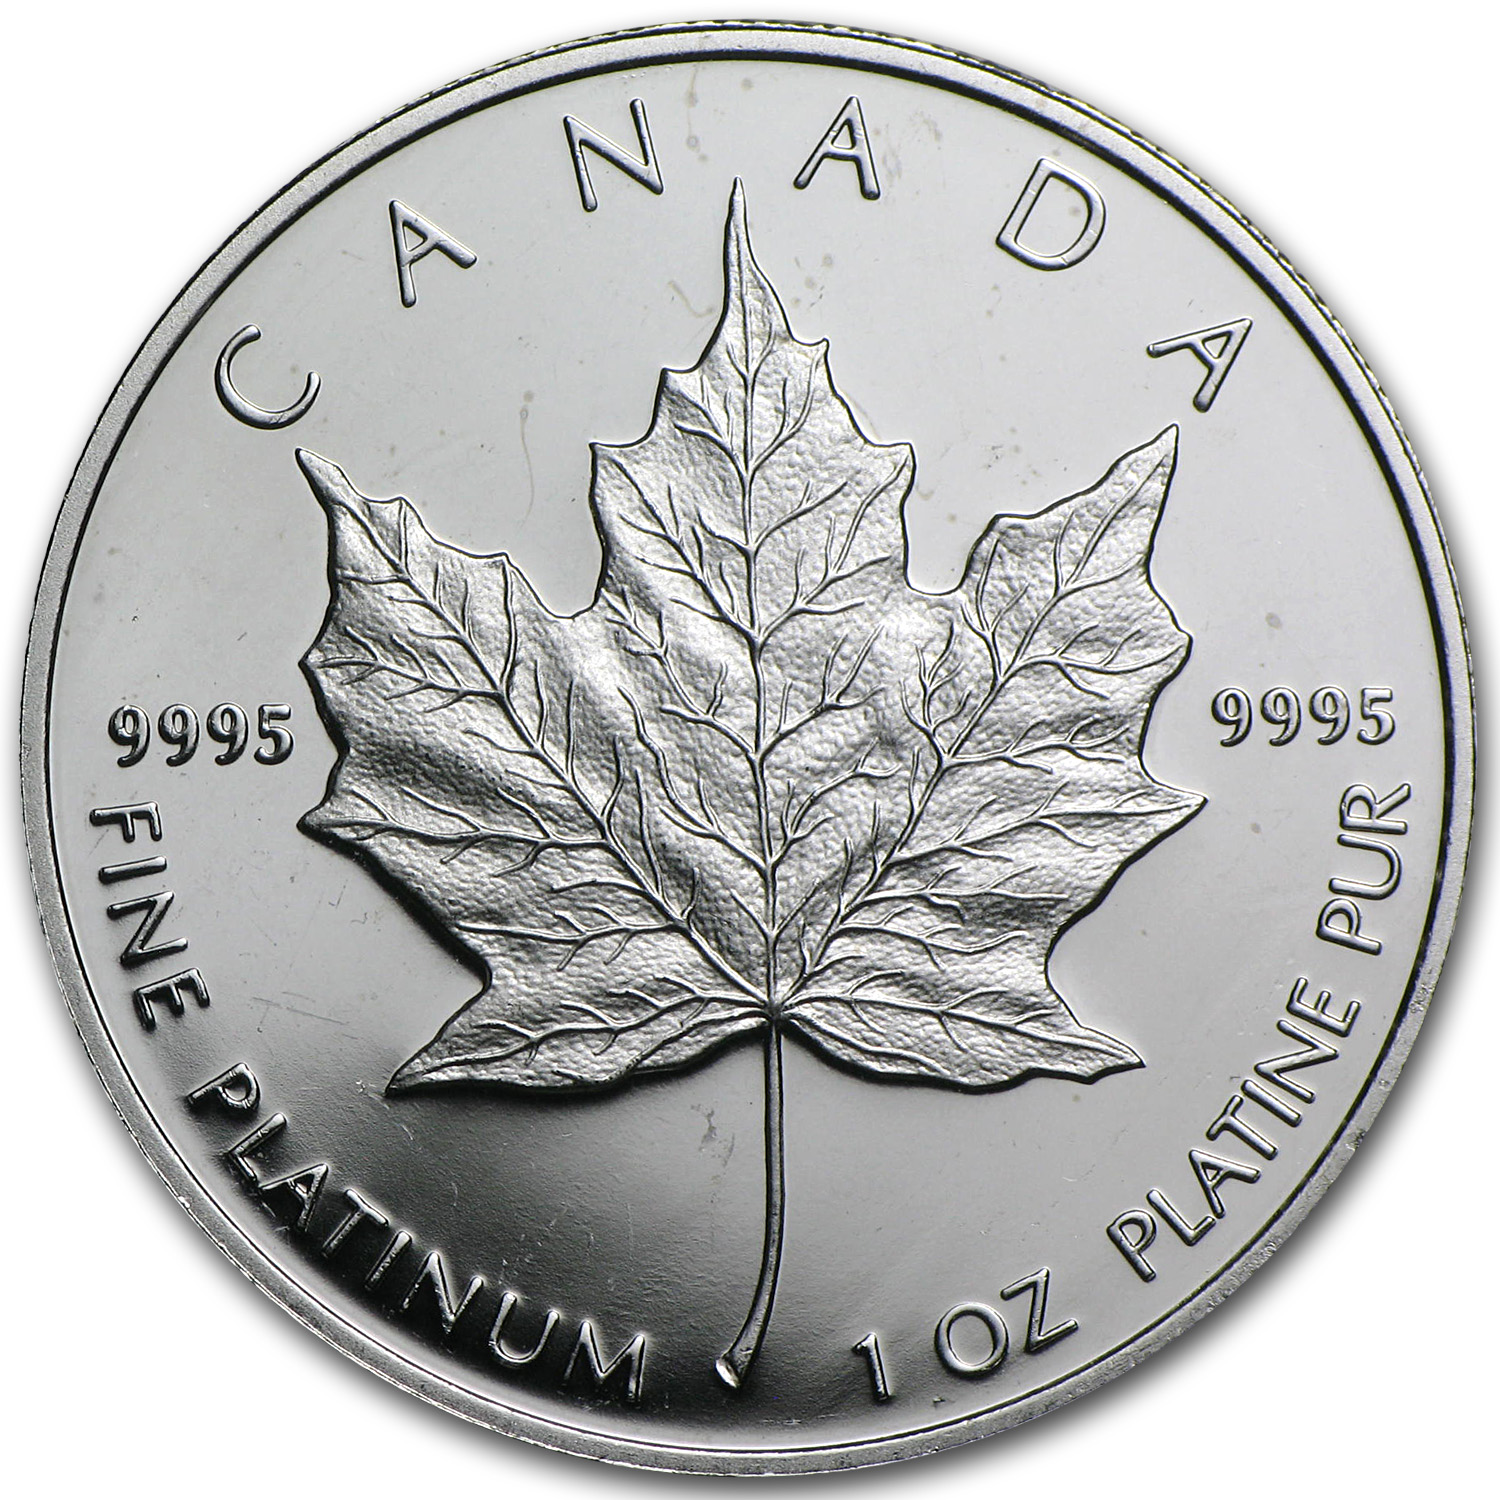 1989 Canada 1 oz Proof Platinum Maple Leaf